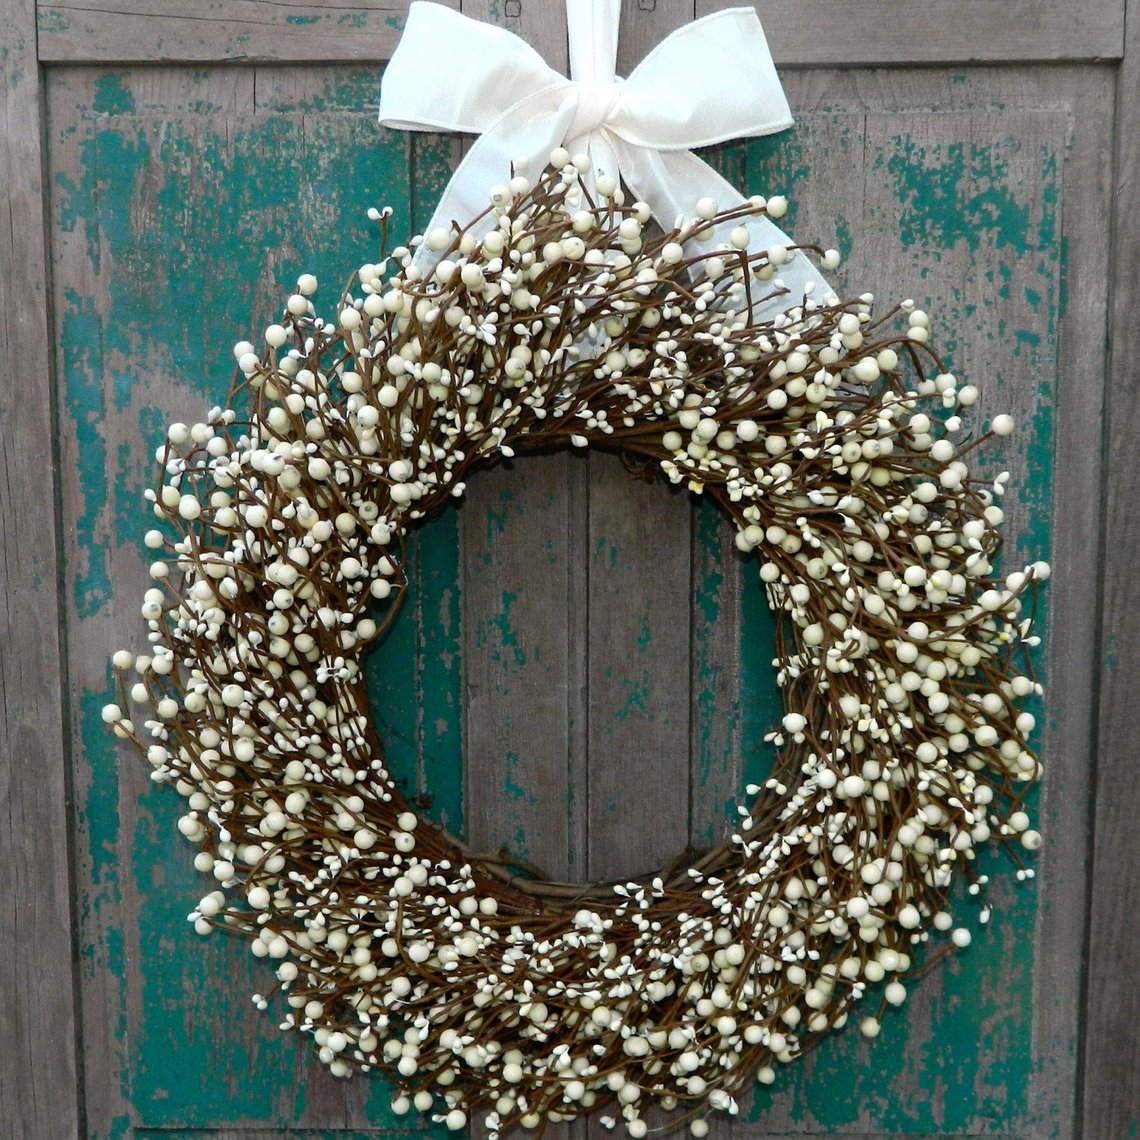 Cream Wreath with Small Round Berries